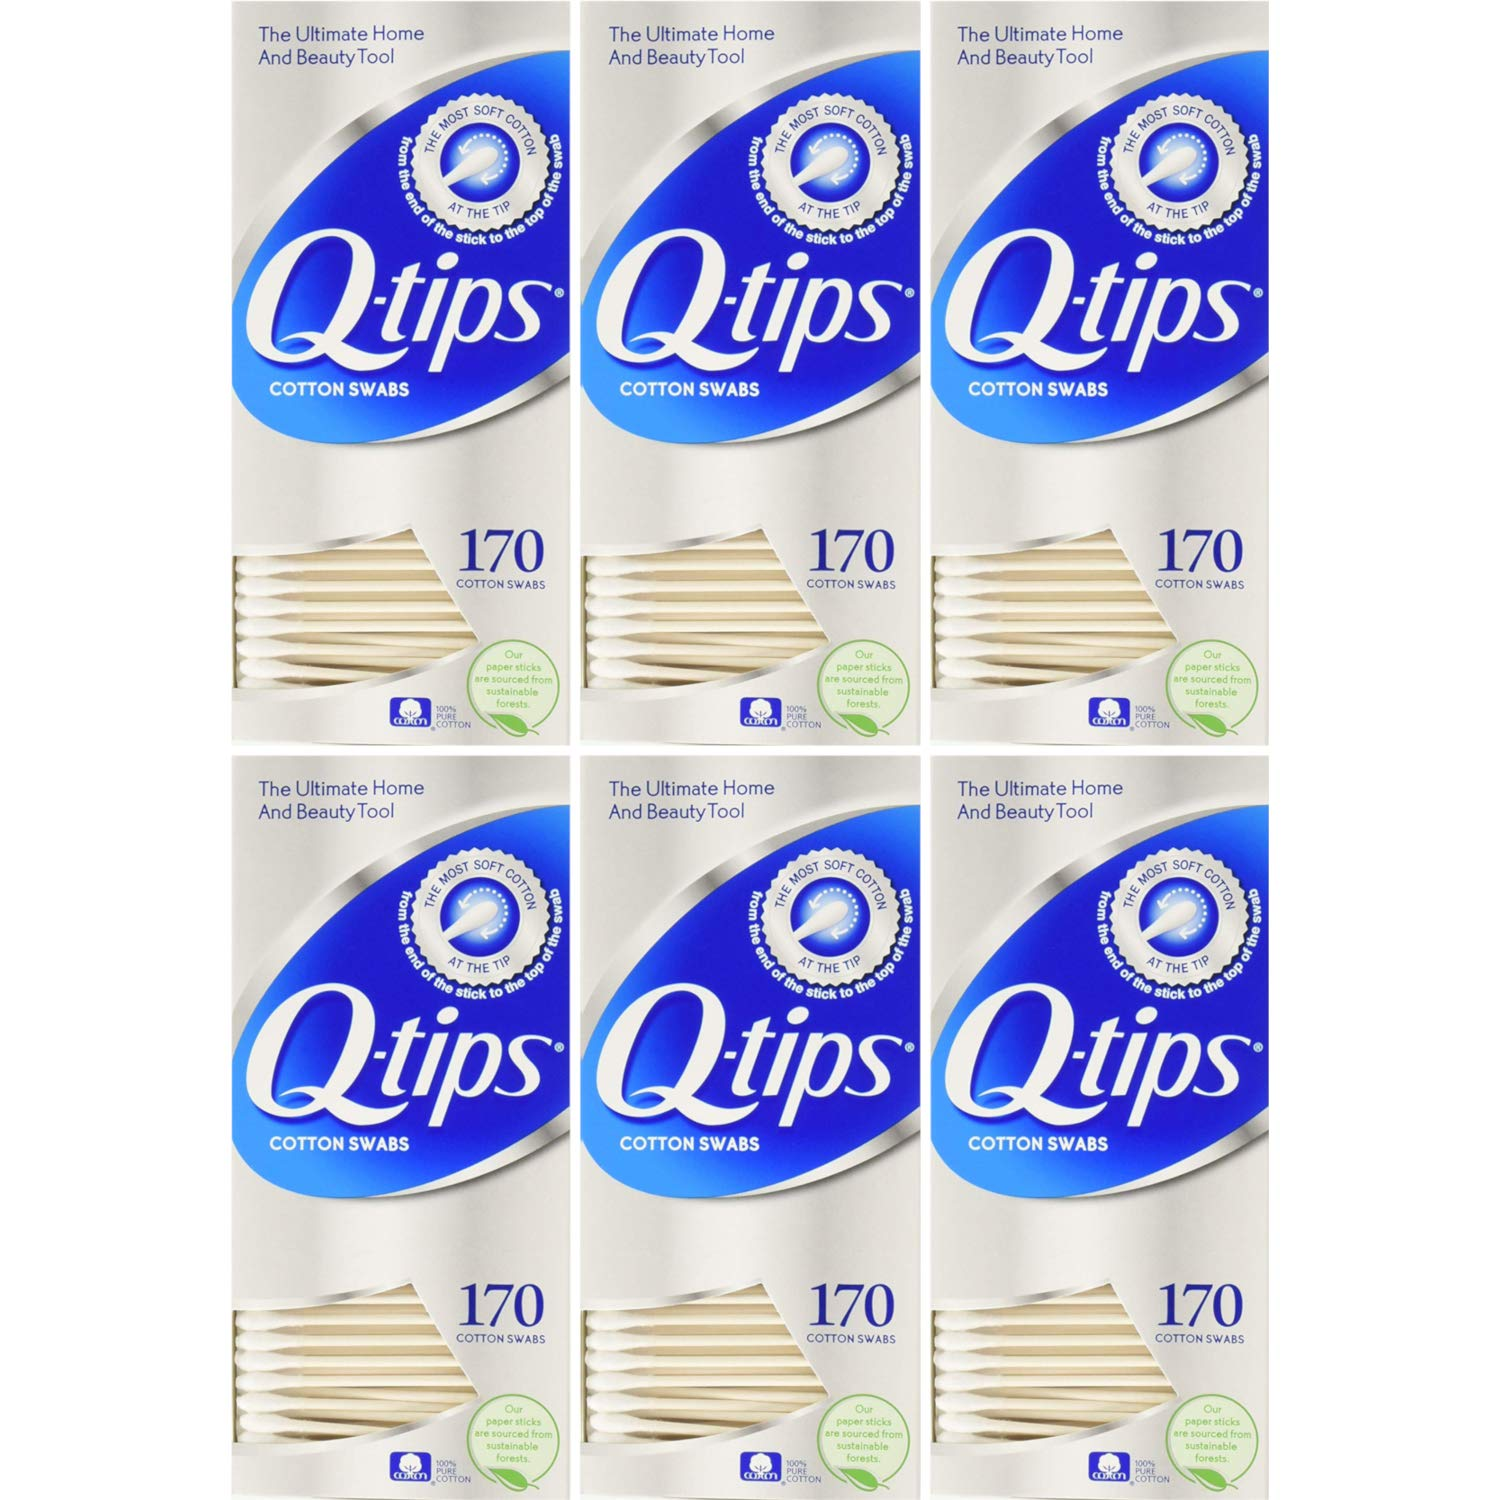 Q-tips Manufacturer direct delivery Cotton Swabs Sales for sale 170 Count 6 Value Pack of each